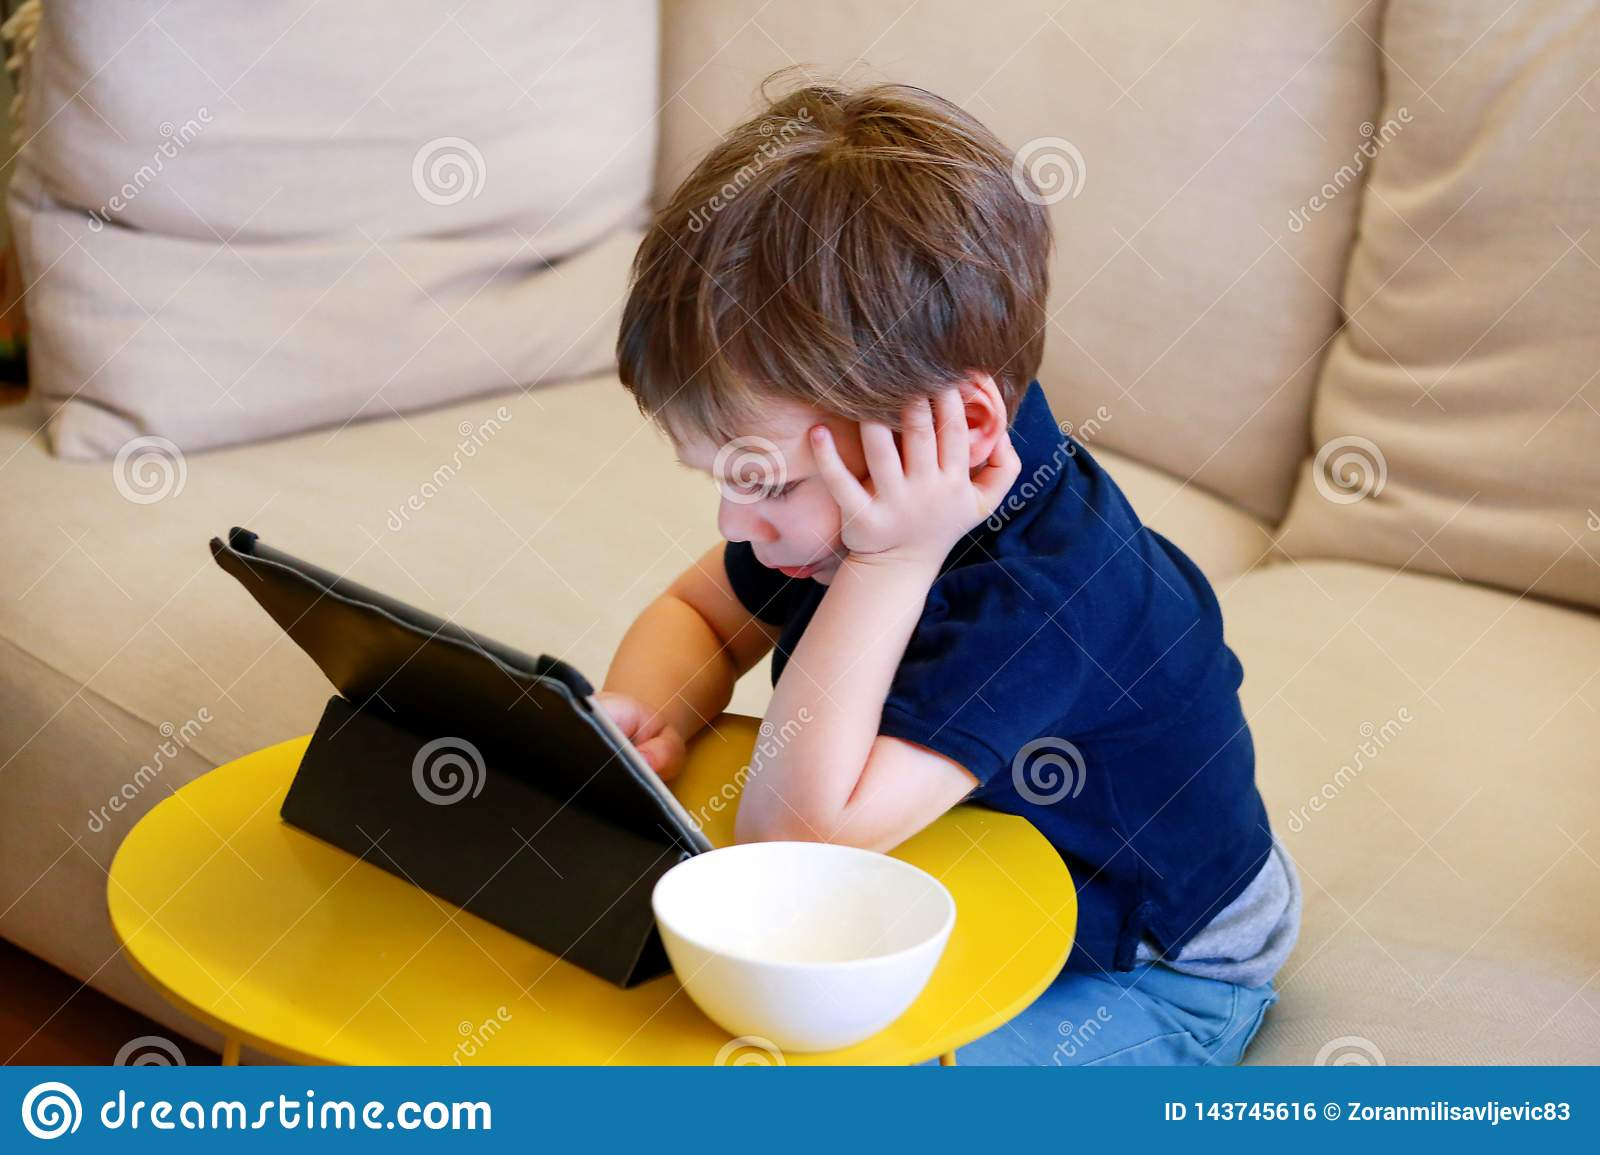 Child using tablet pc on bed at home. Cute boy on sofa is watching cartoon, playing games and learning from laptop. Education, fun